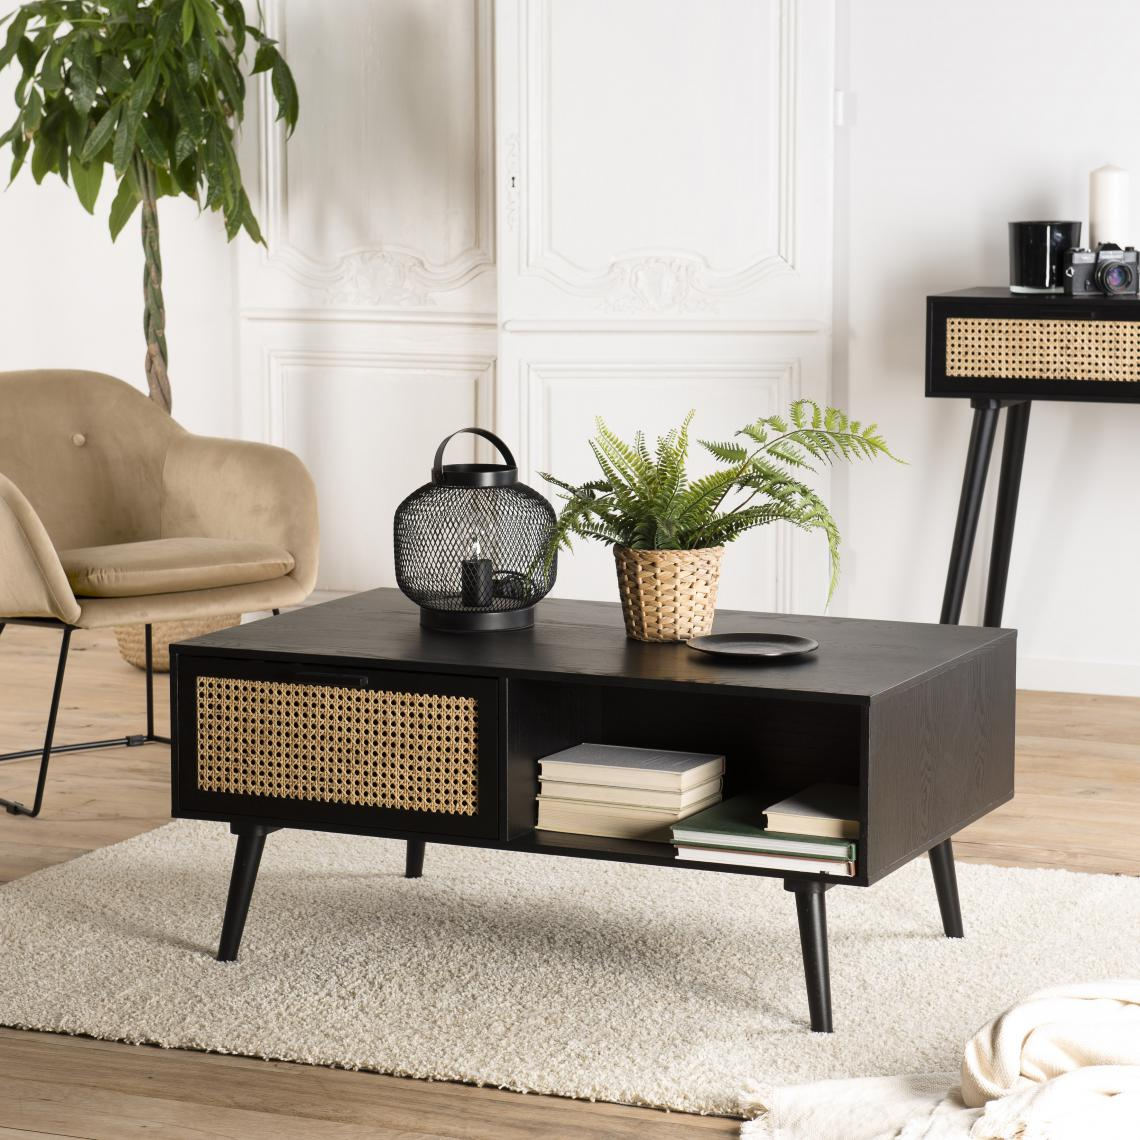 Table basse noire 2 tiroirs cannage 1 niche - MIKEL Ntxo2